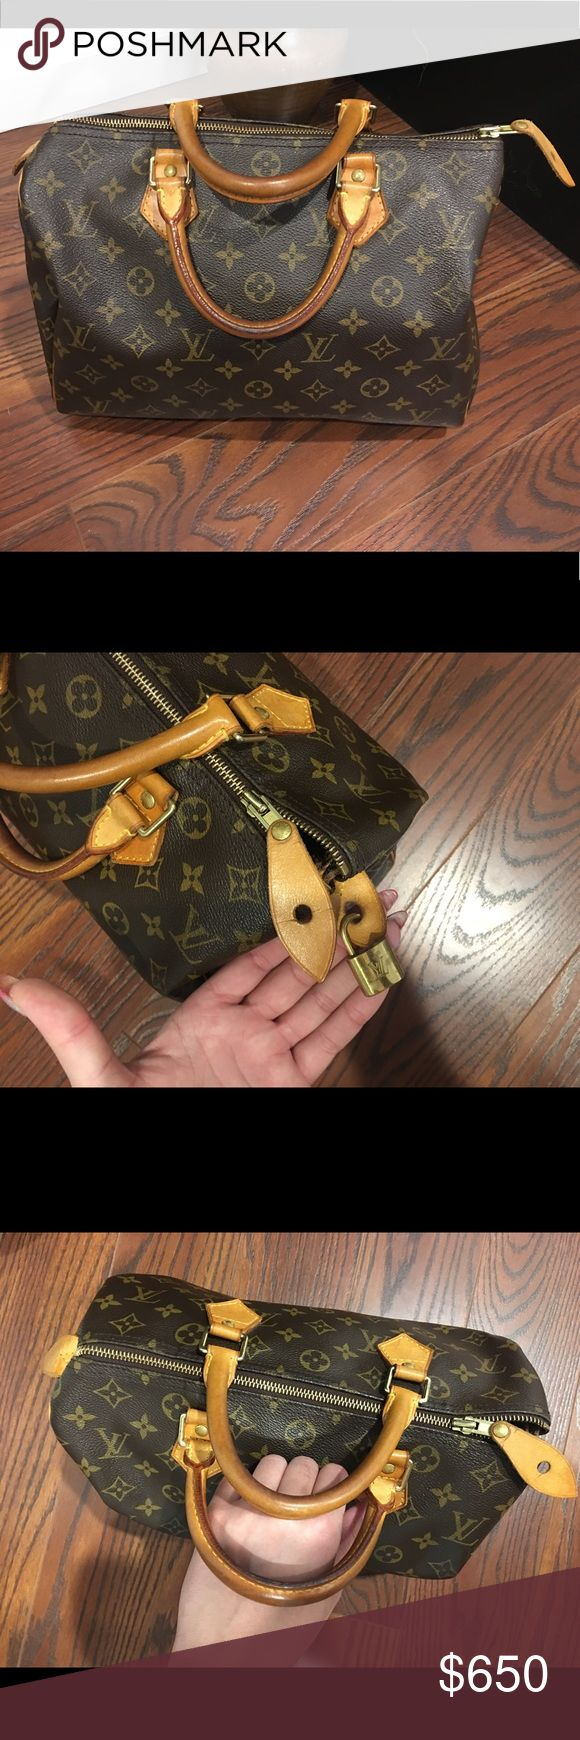 Louis Vuitton speedy 30 Monogram bag! Louis Vuitton speedy 30 Monogram bag! In great condition!! 100% Authentic!! Does not come with key just the lock. Some water marks inside bag other than that In fantastic condition as you can see!! Louis Vuitton Bags